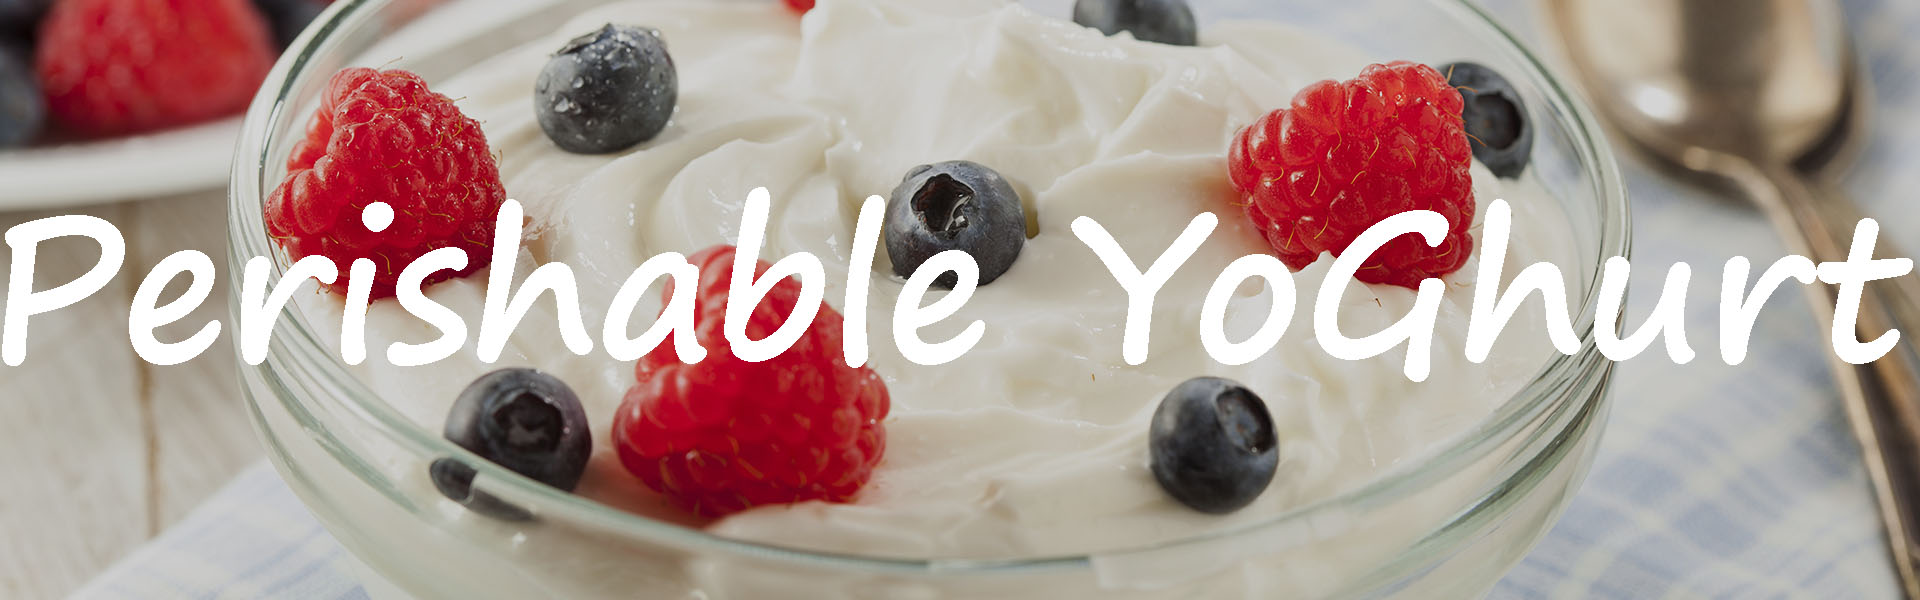 web-ready-perishable-yoghurt-3